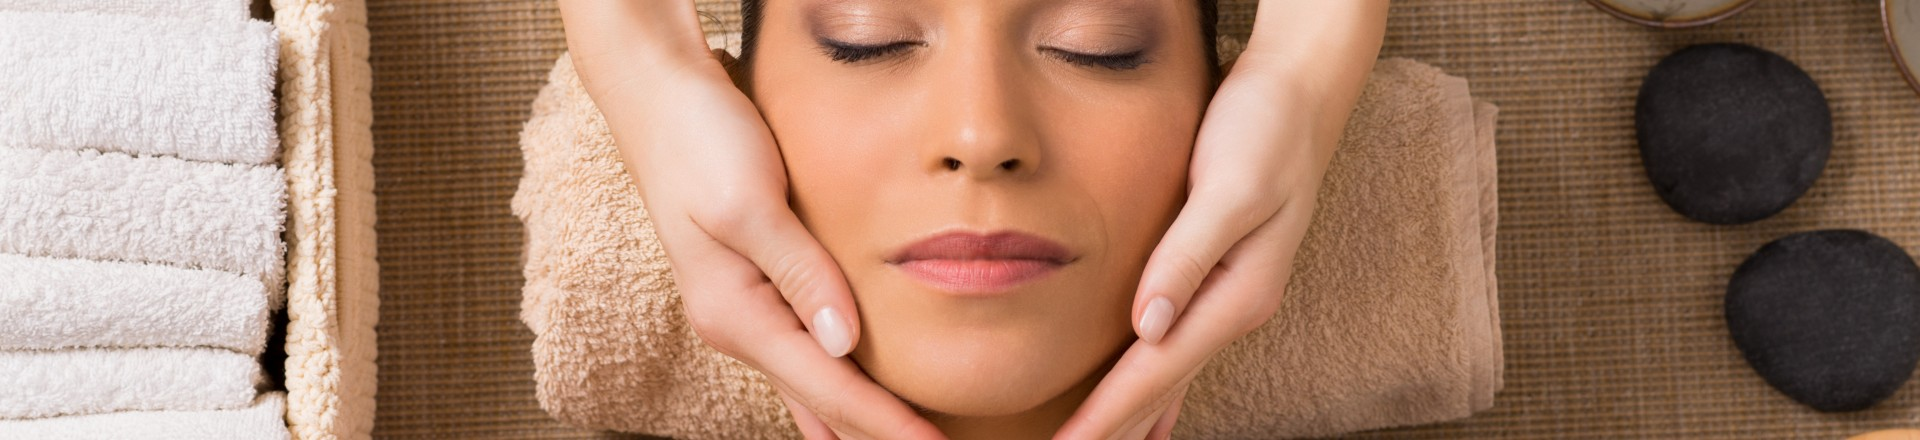 Chemical exfoliation sloughs off dead skin cells which stimulates cellular  growth and slows down the aging process. Spa Beleza's facials are designed  ...